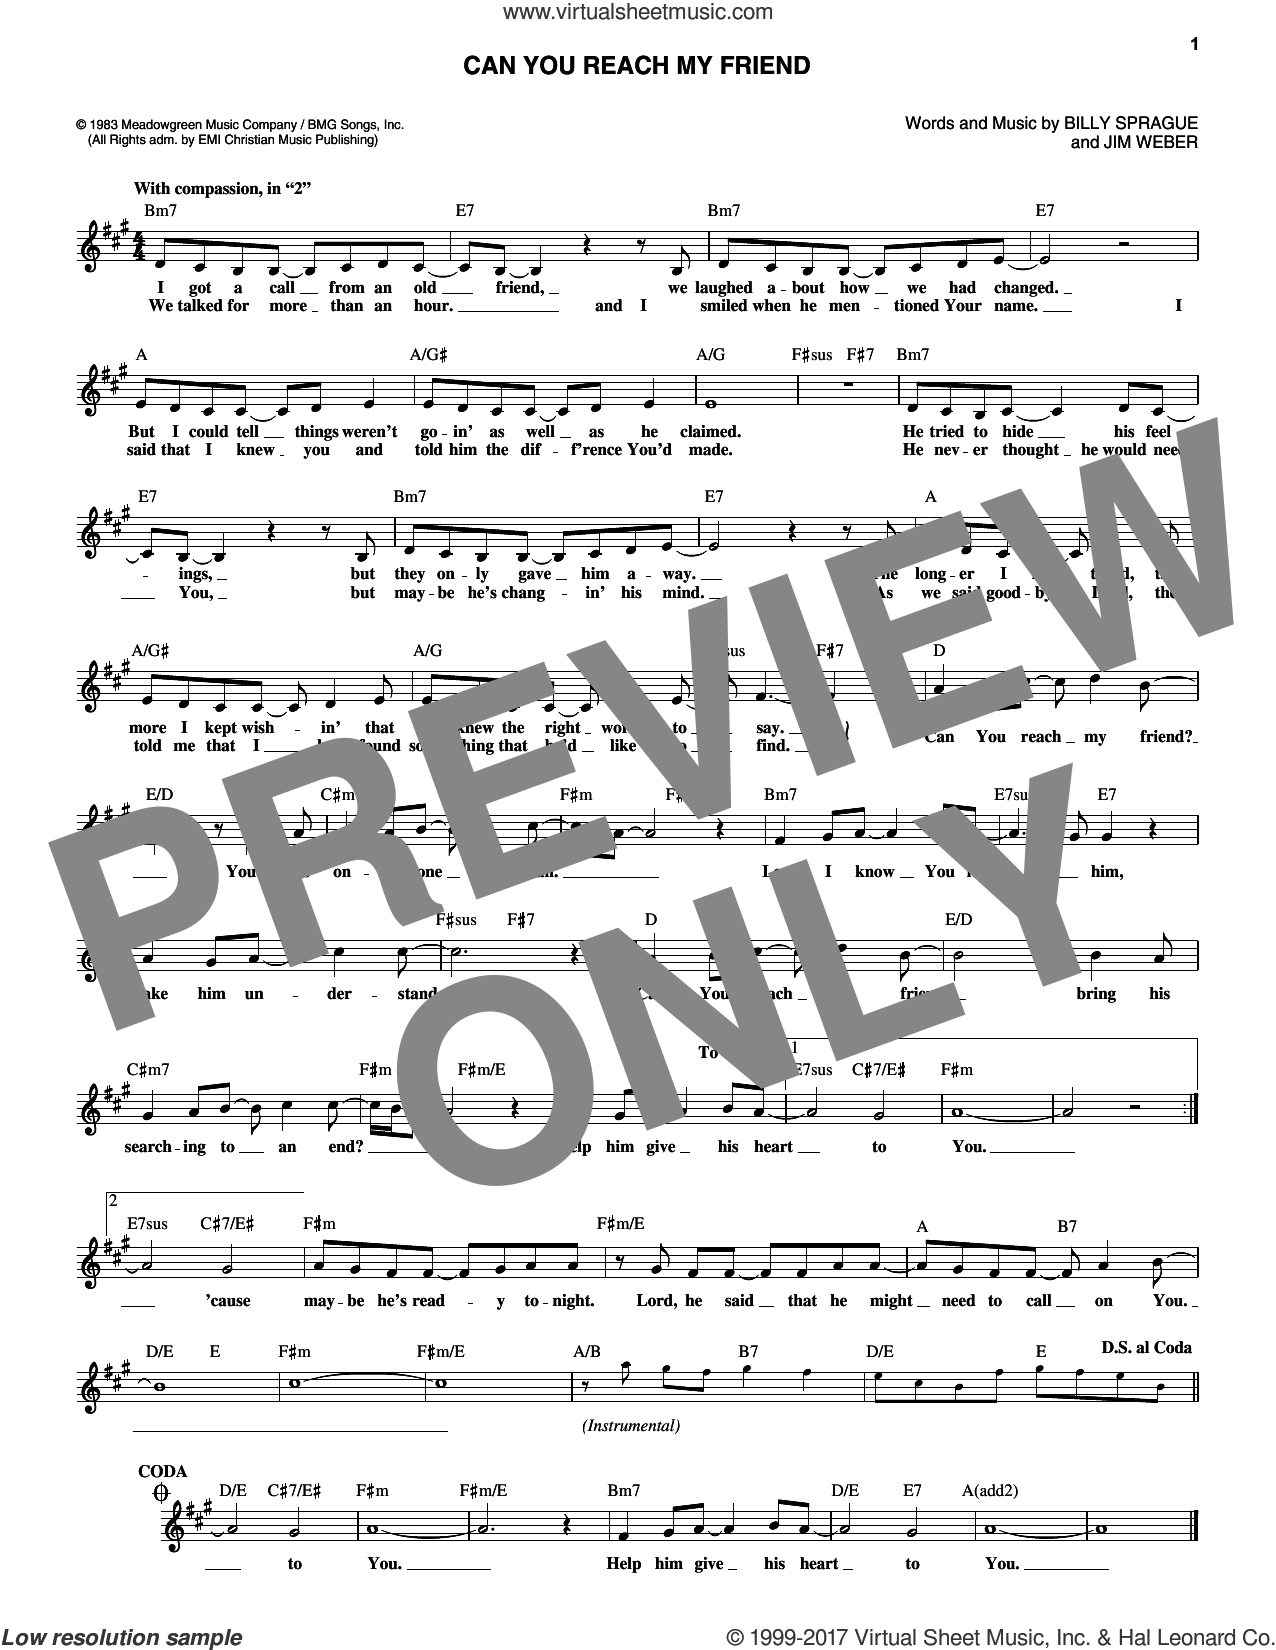 Can You Reach My Friend sheet music for voice and other instruments (fake book) by Helen Baylor, Billy Sprague and Jim Weber, intermediate skill level